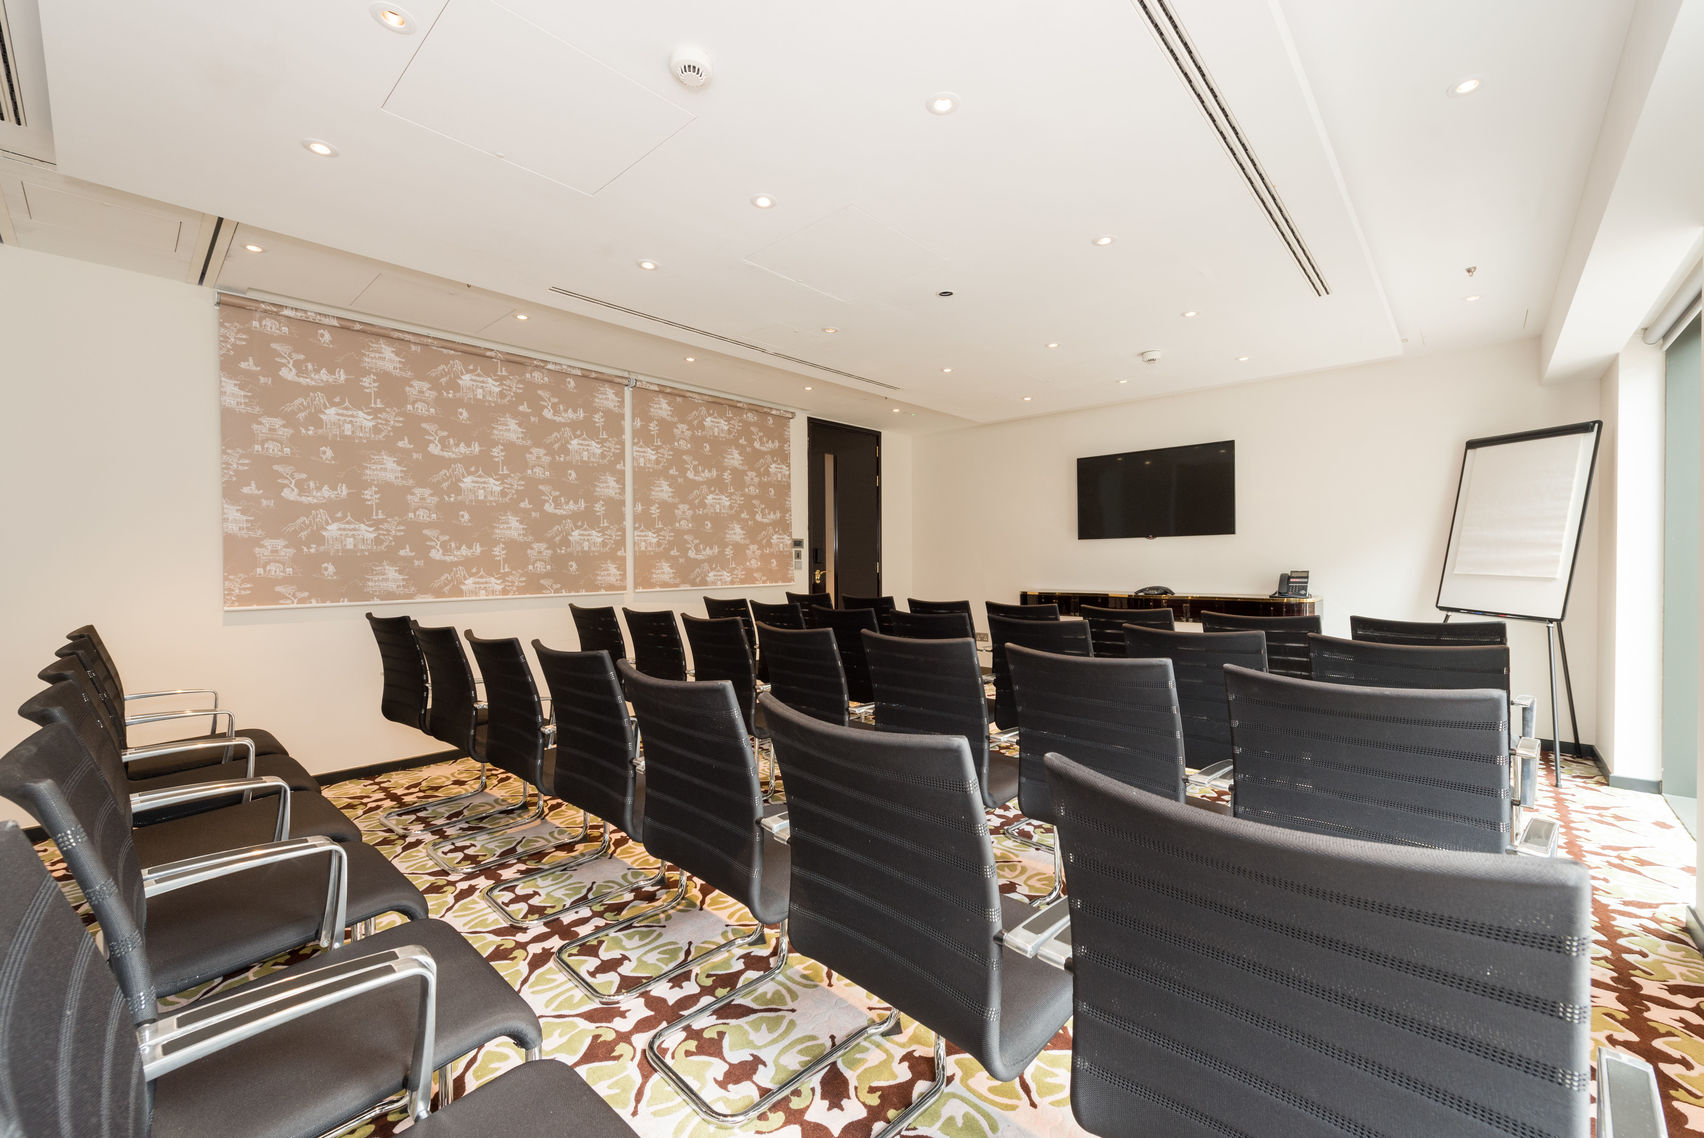 A room with lots of brown office chairs facing a flip-chart at the front of the room, with decorate red, gold and cream carpet